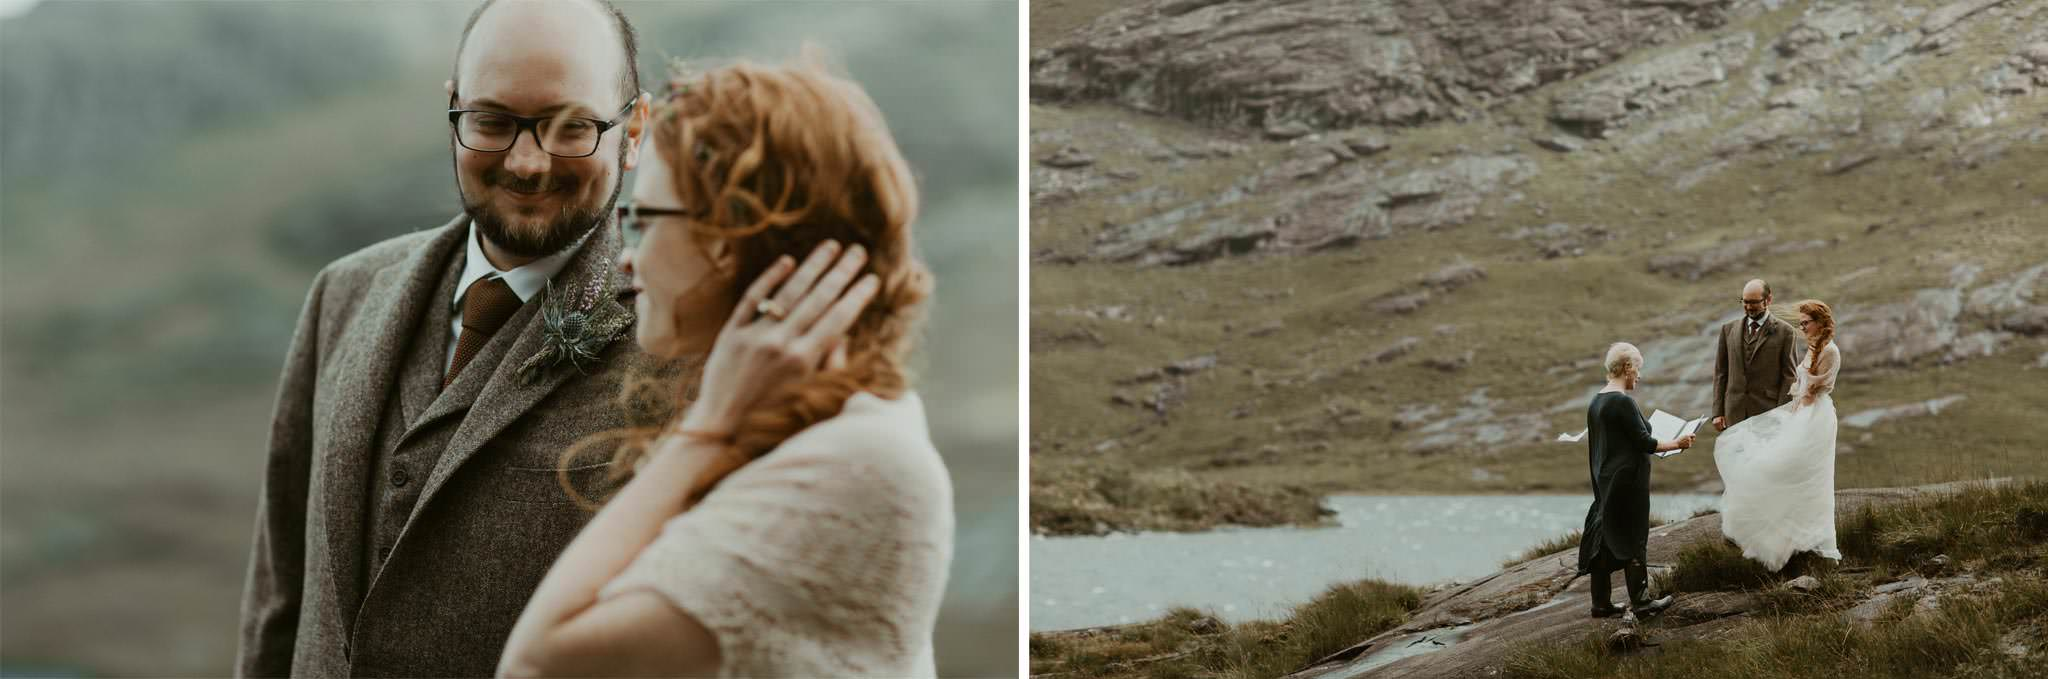 isle-of-skye-elopement-wedding-035